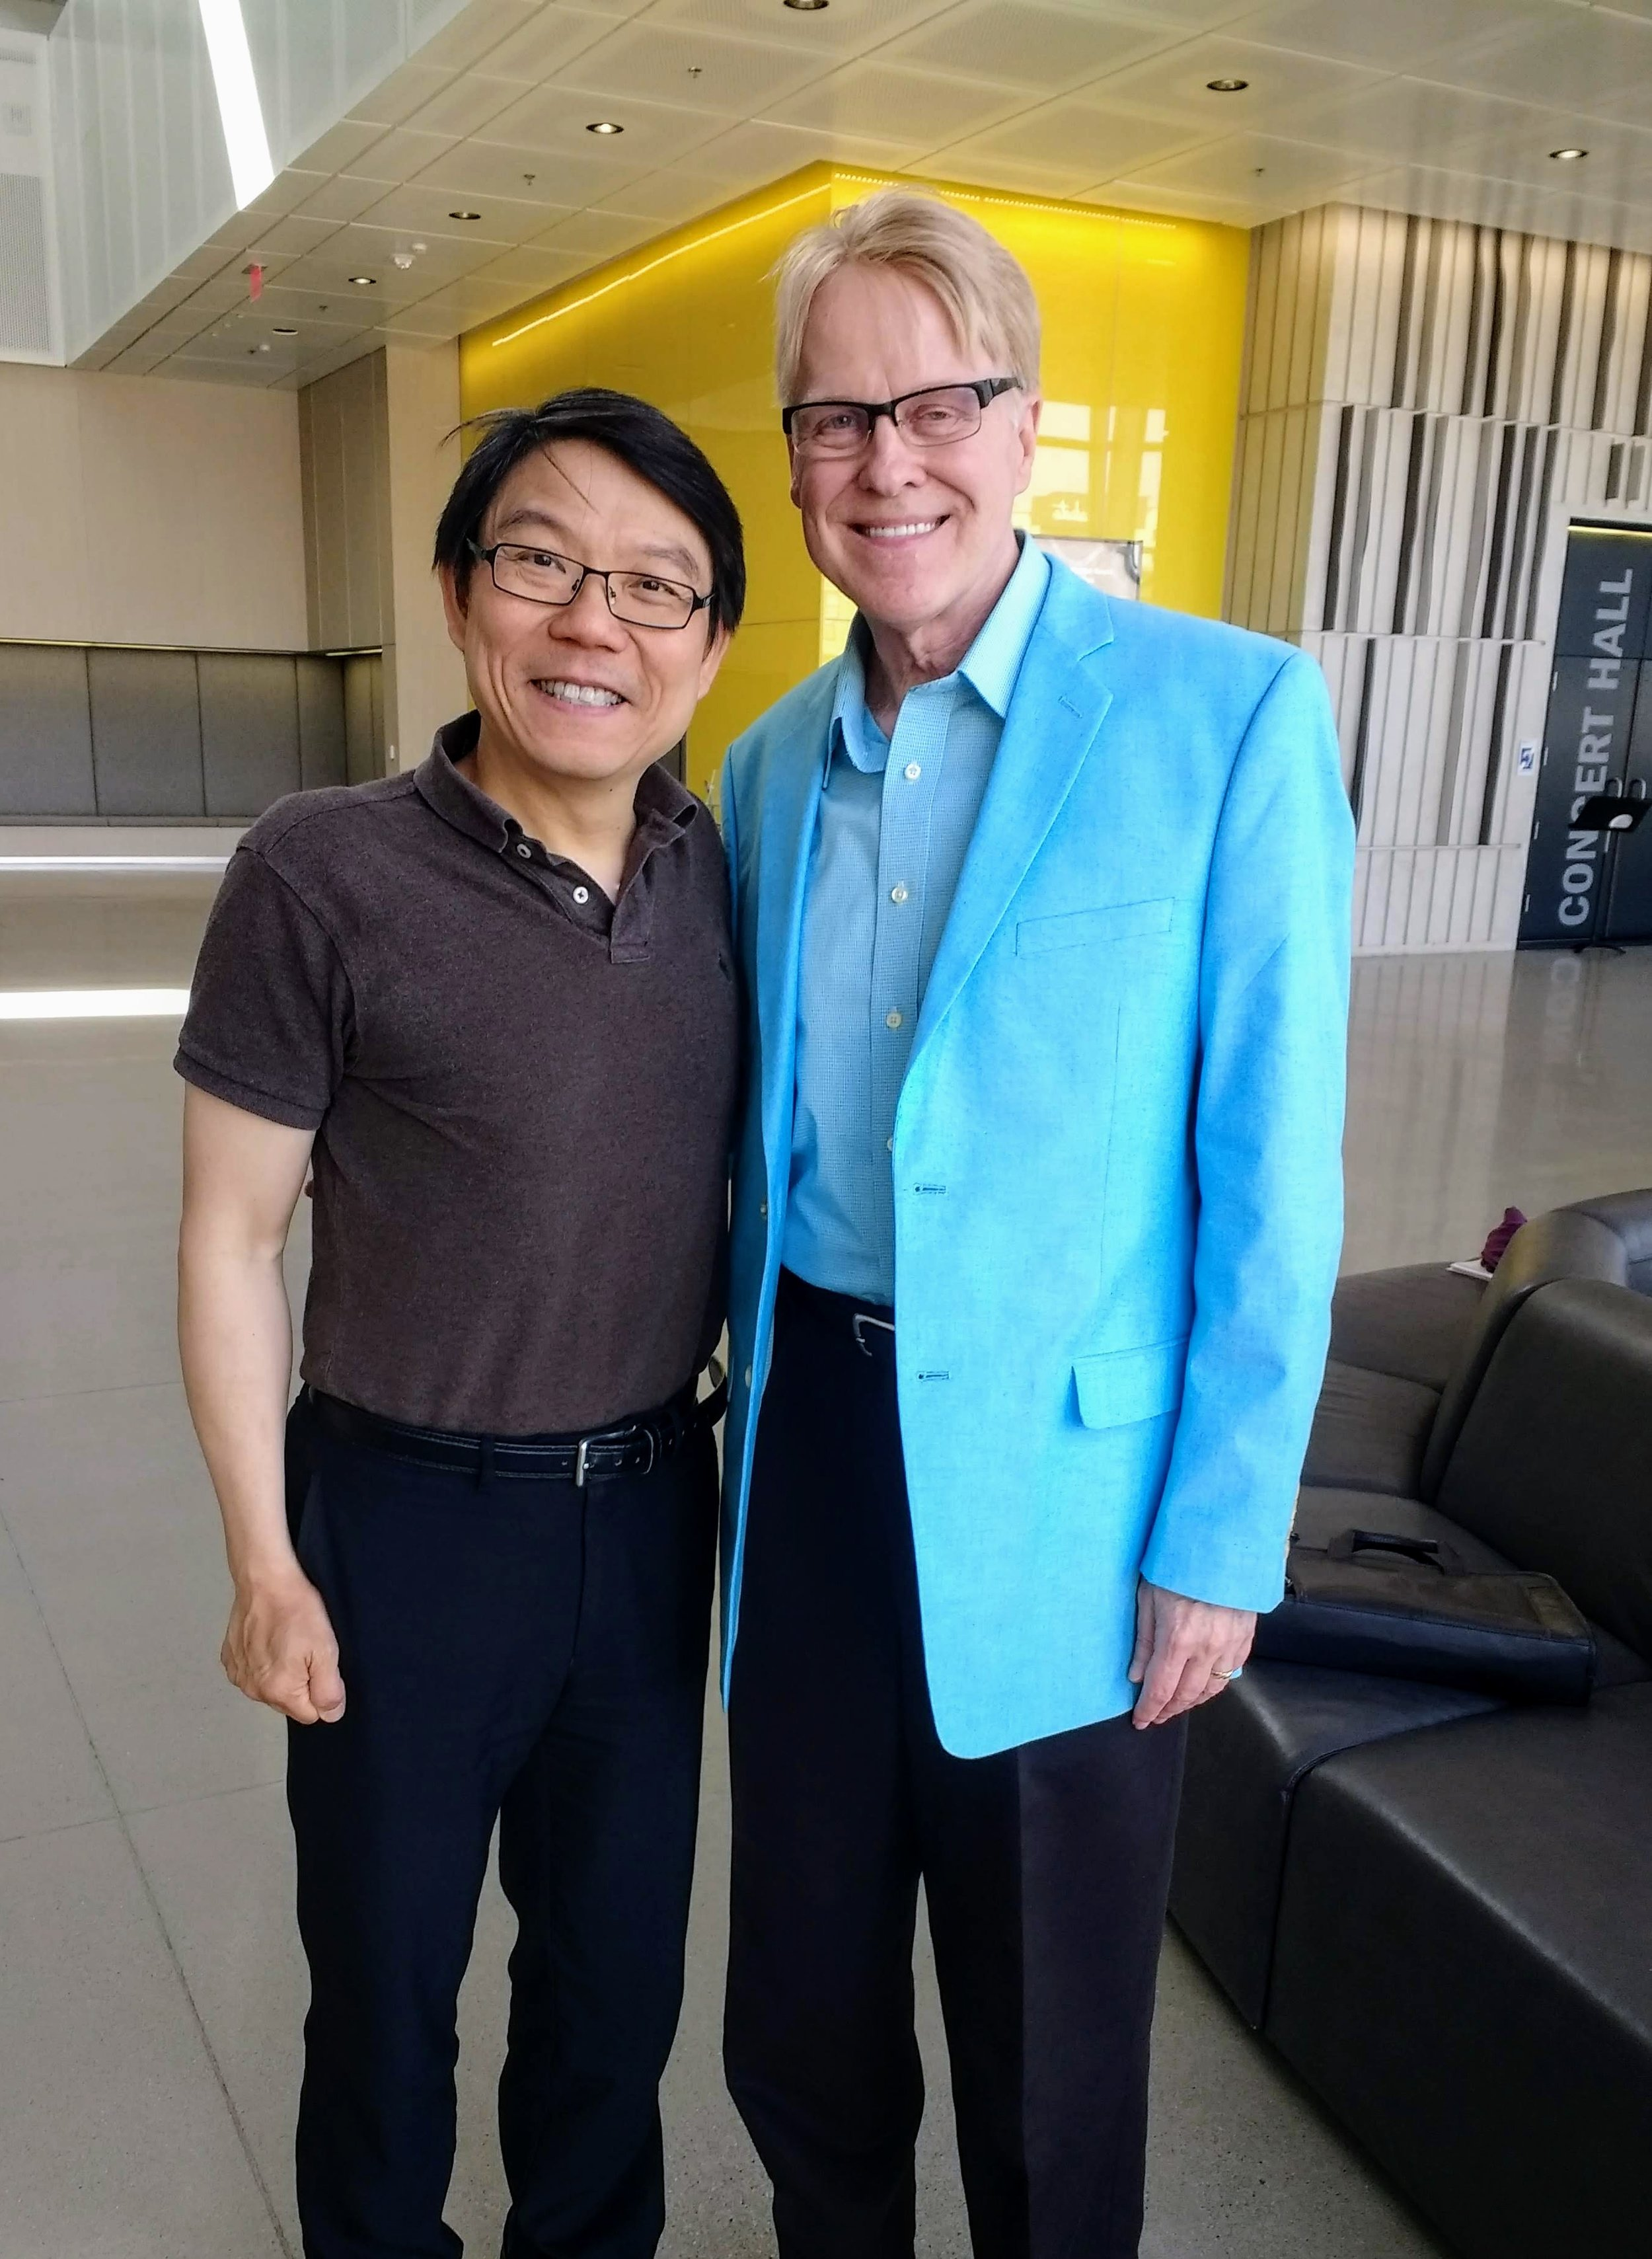 Kevin with Samuel Kwok